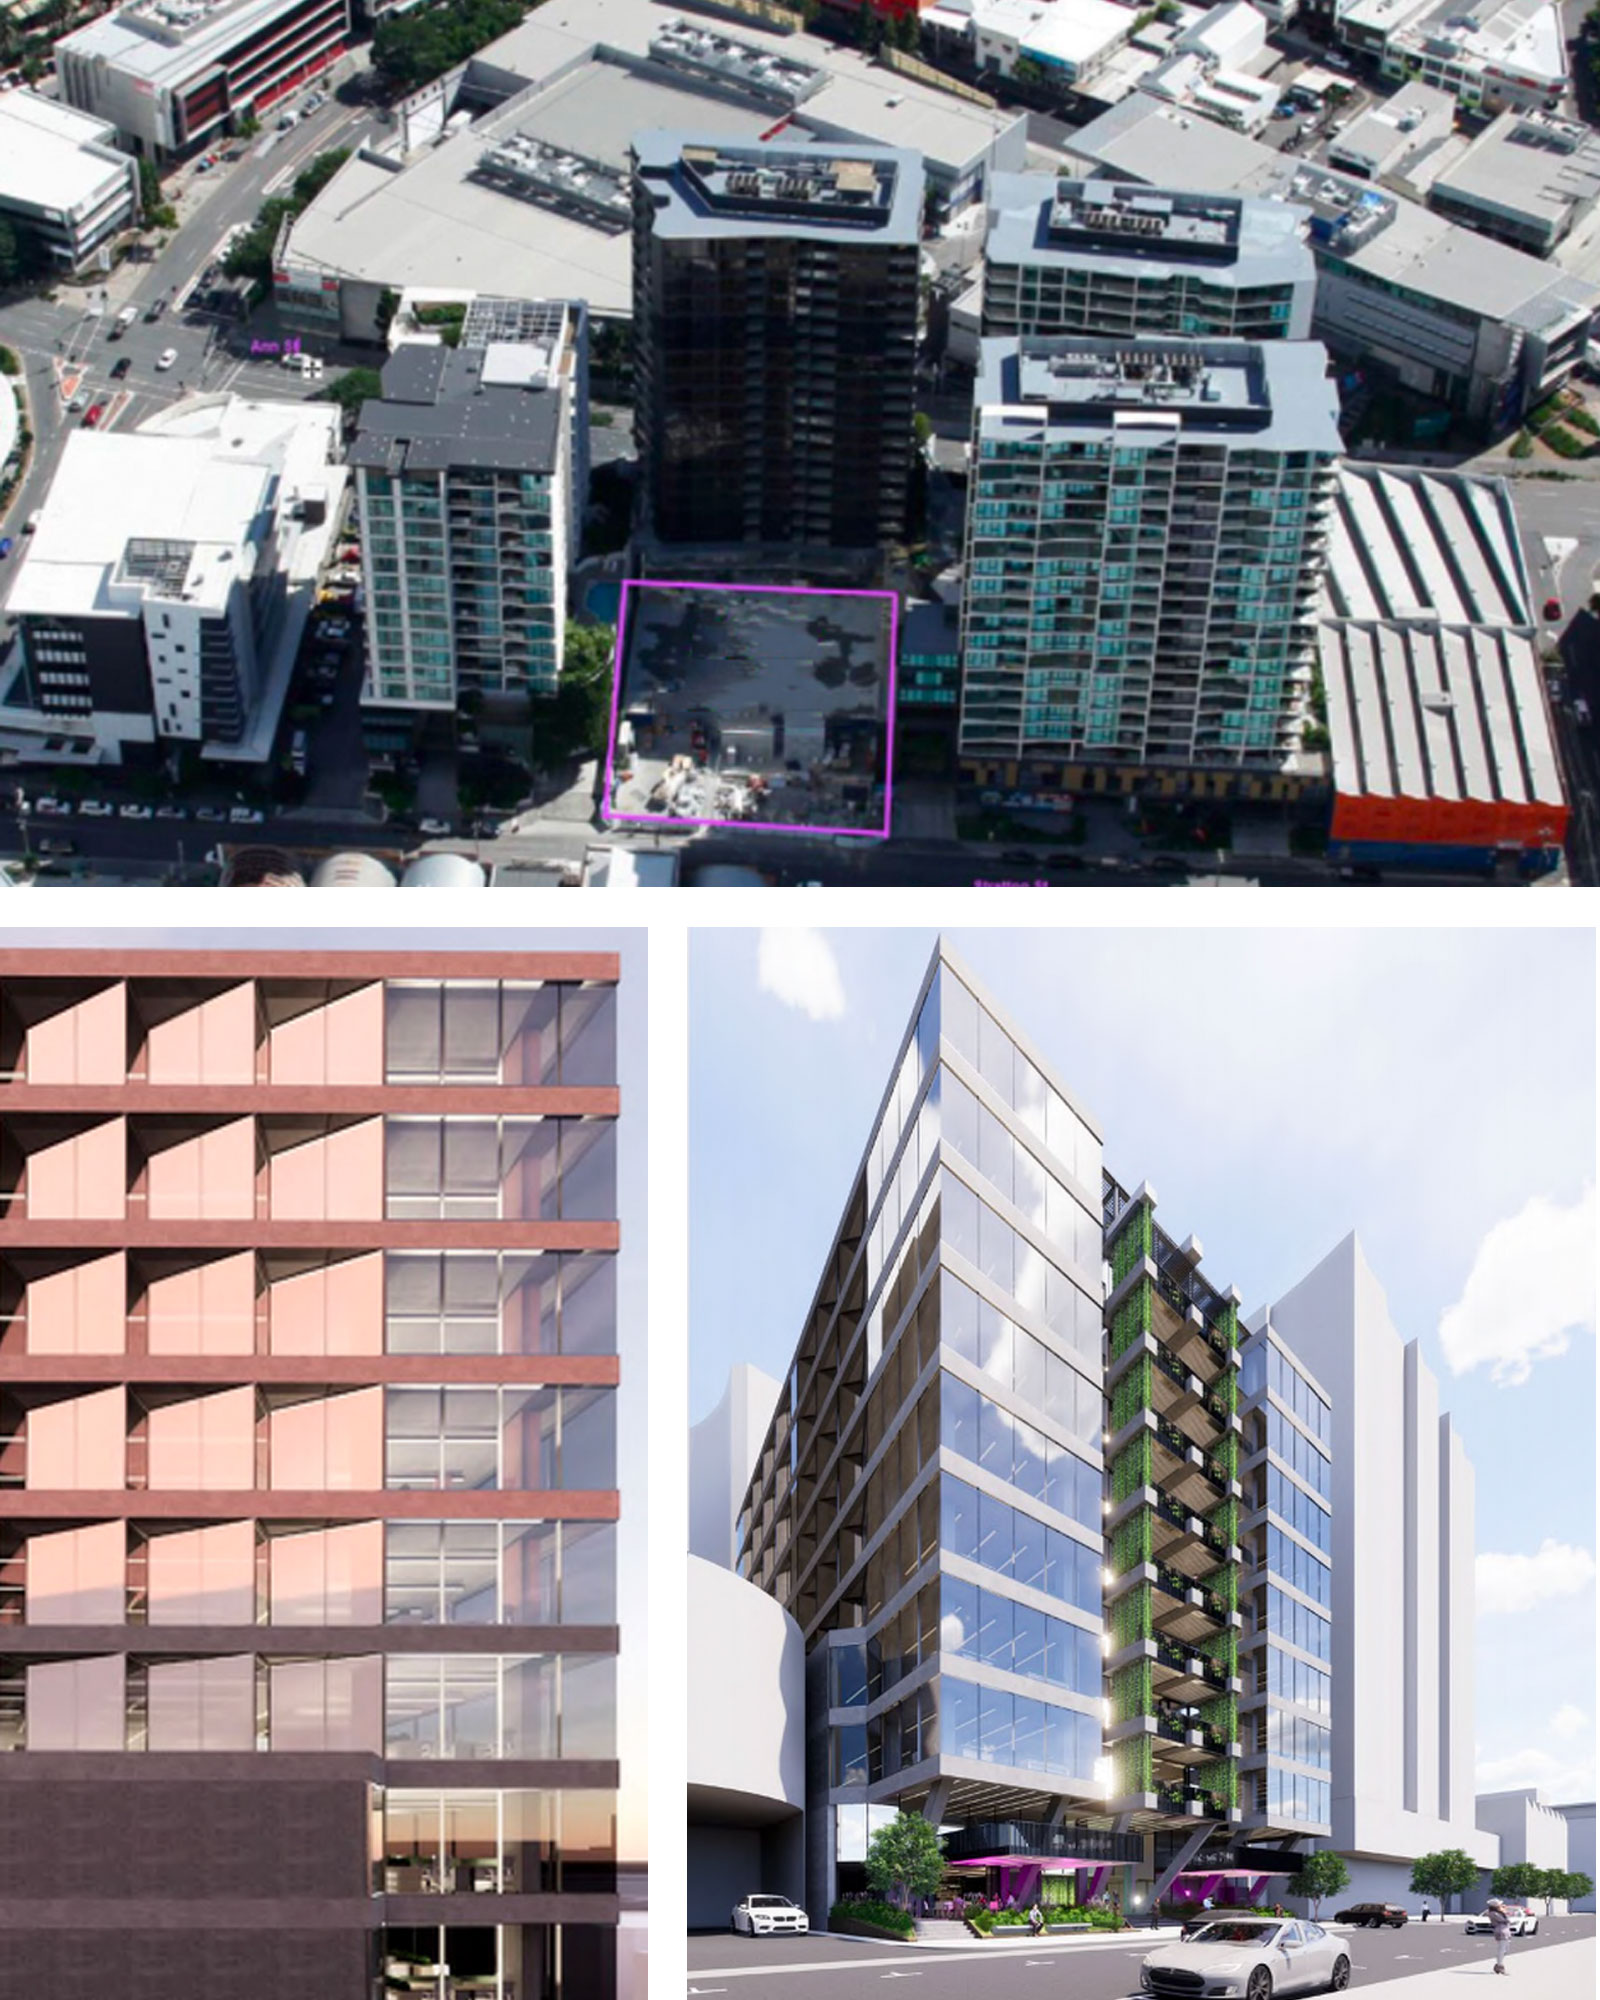 The final site at Newstead Central (top) has been acquired by Silverstone. The Rothelowman-designed scheme for the tower (bottom left, right).